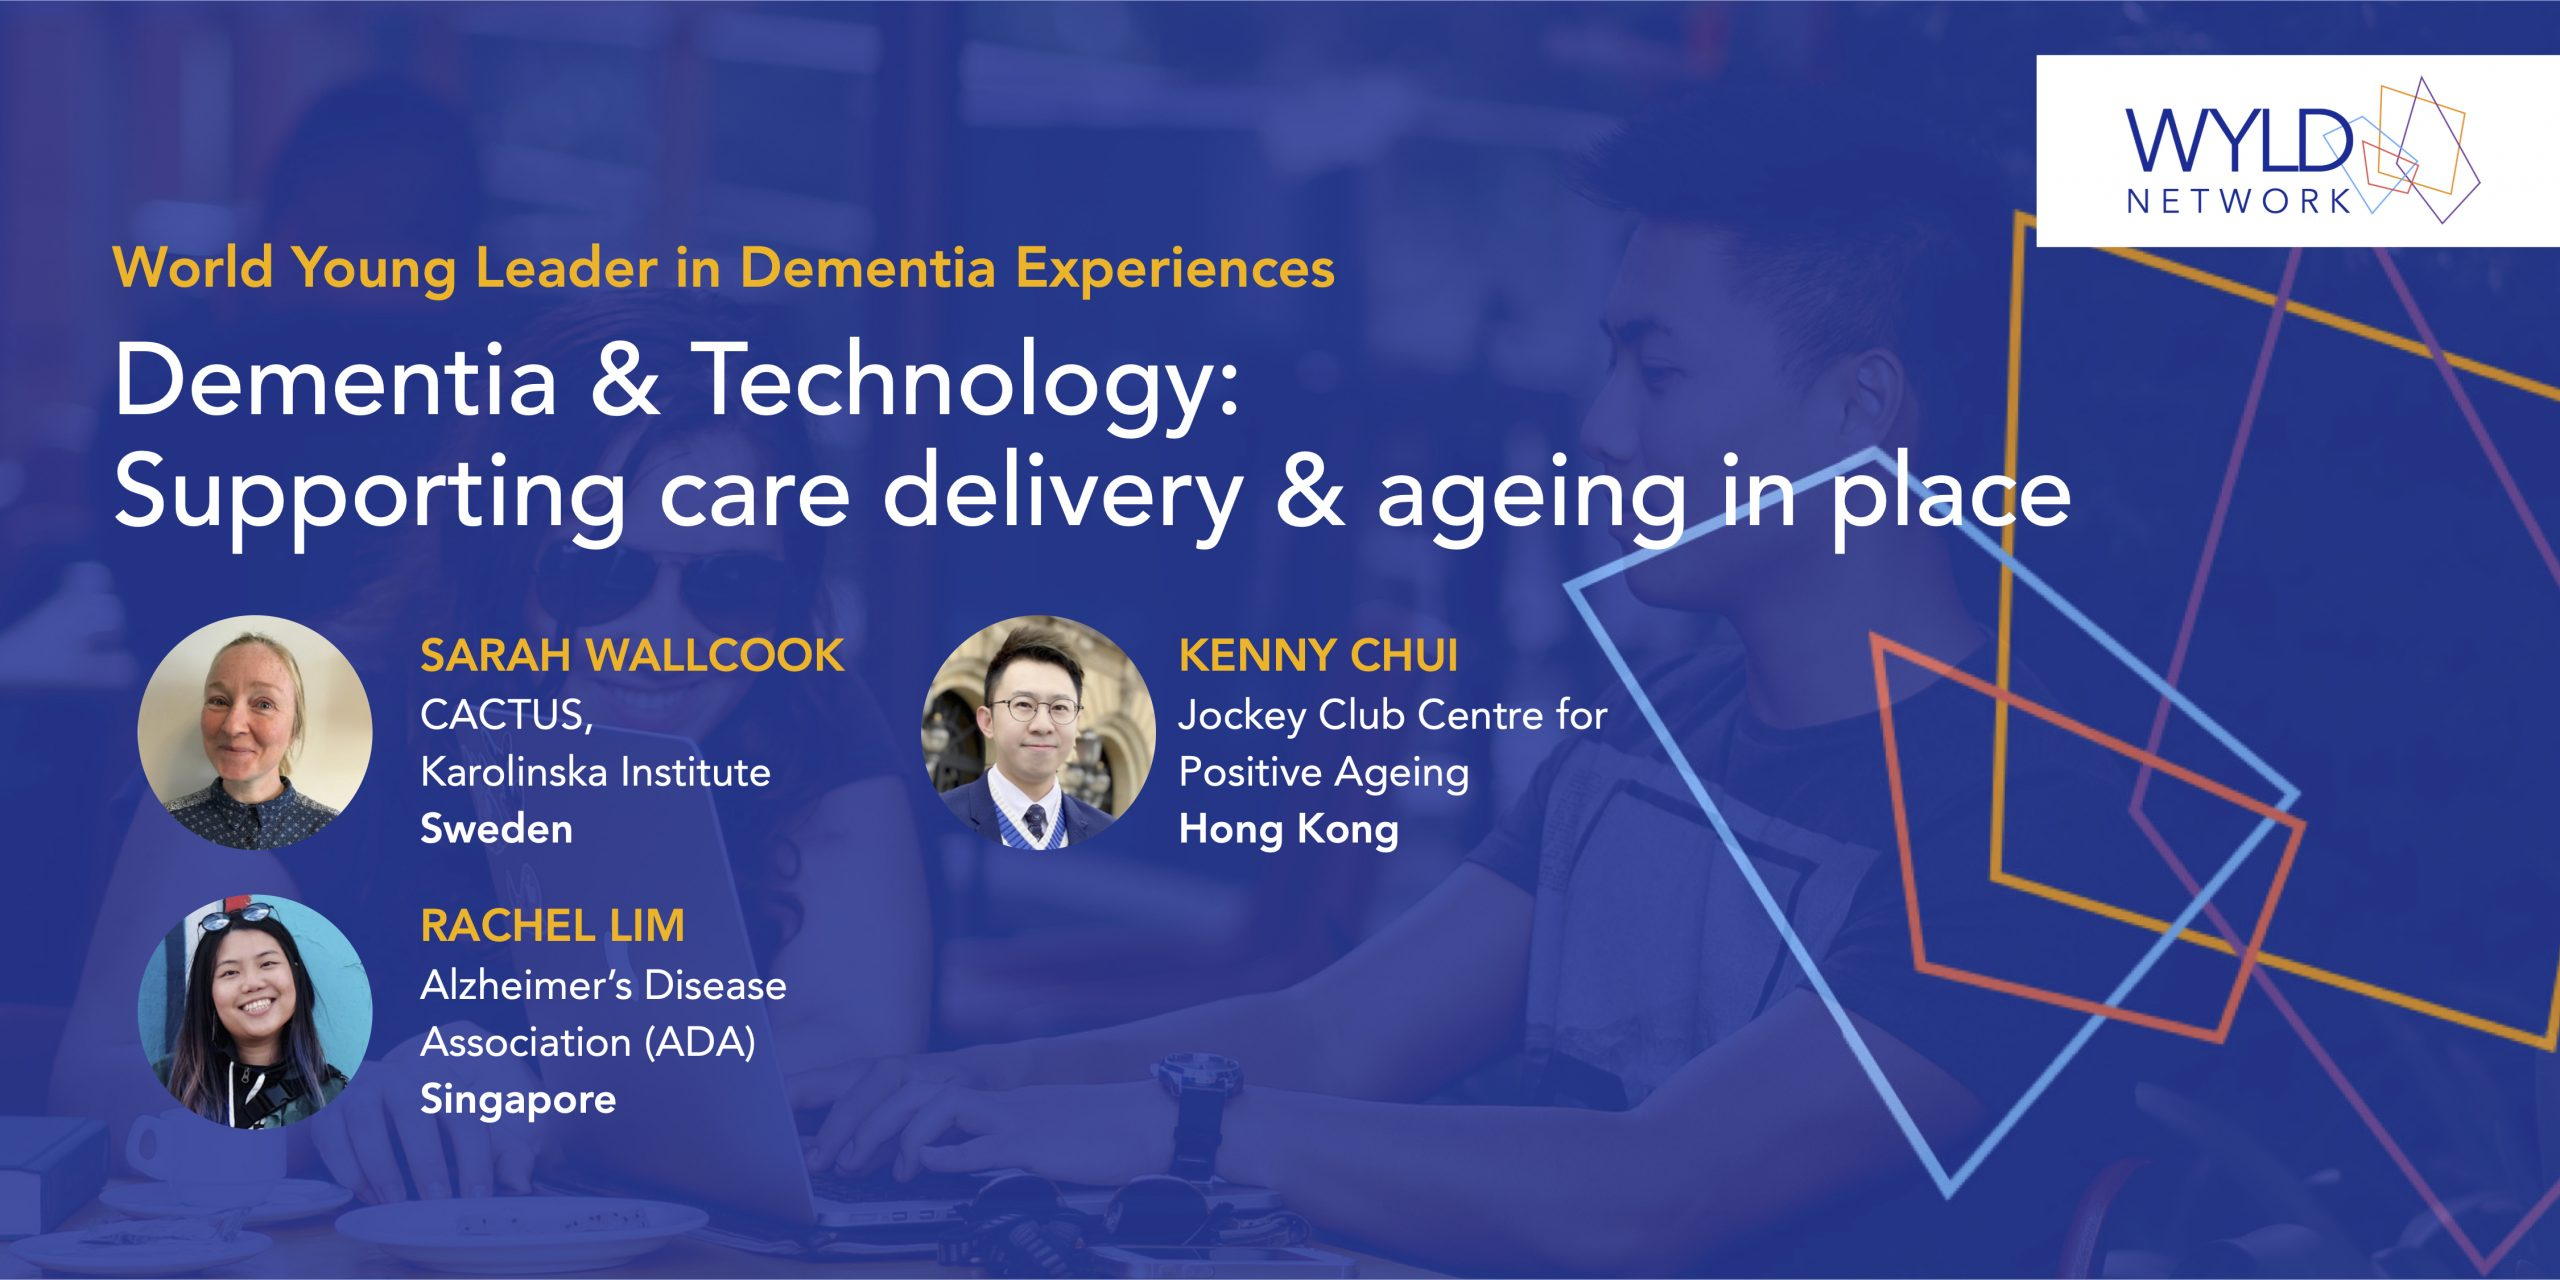 Dementia & Technology: Supporting care delivery and ageing in place